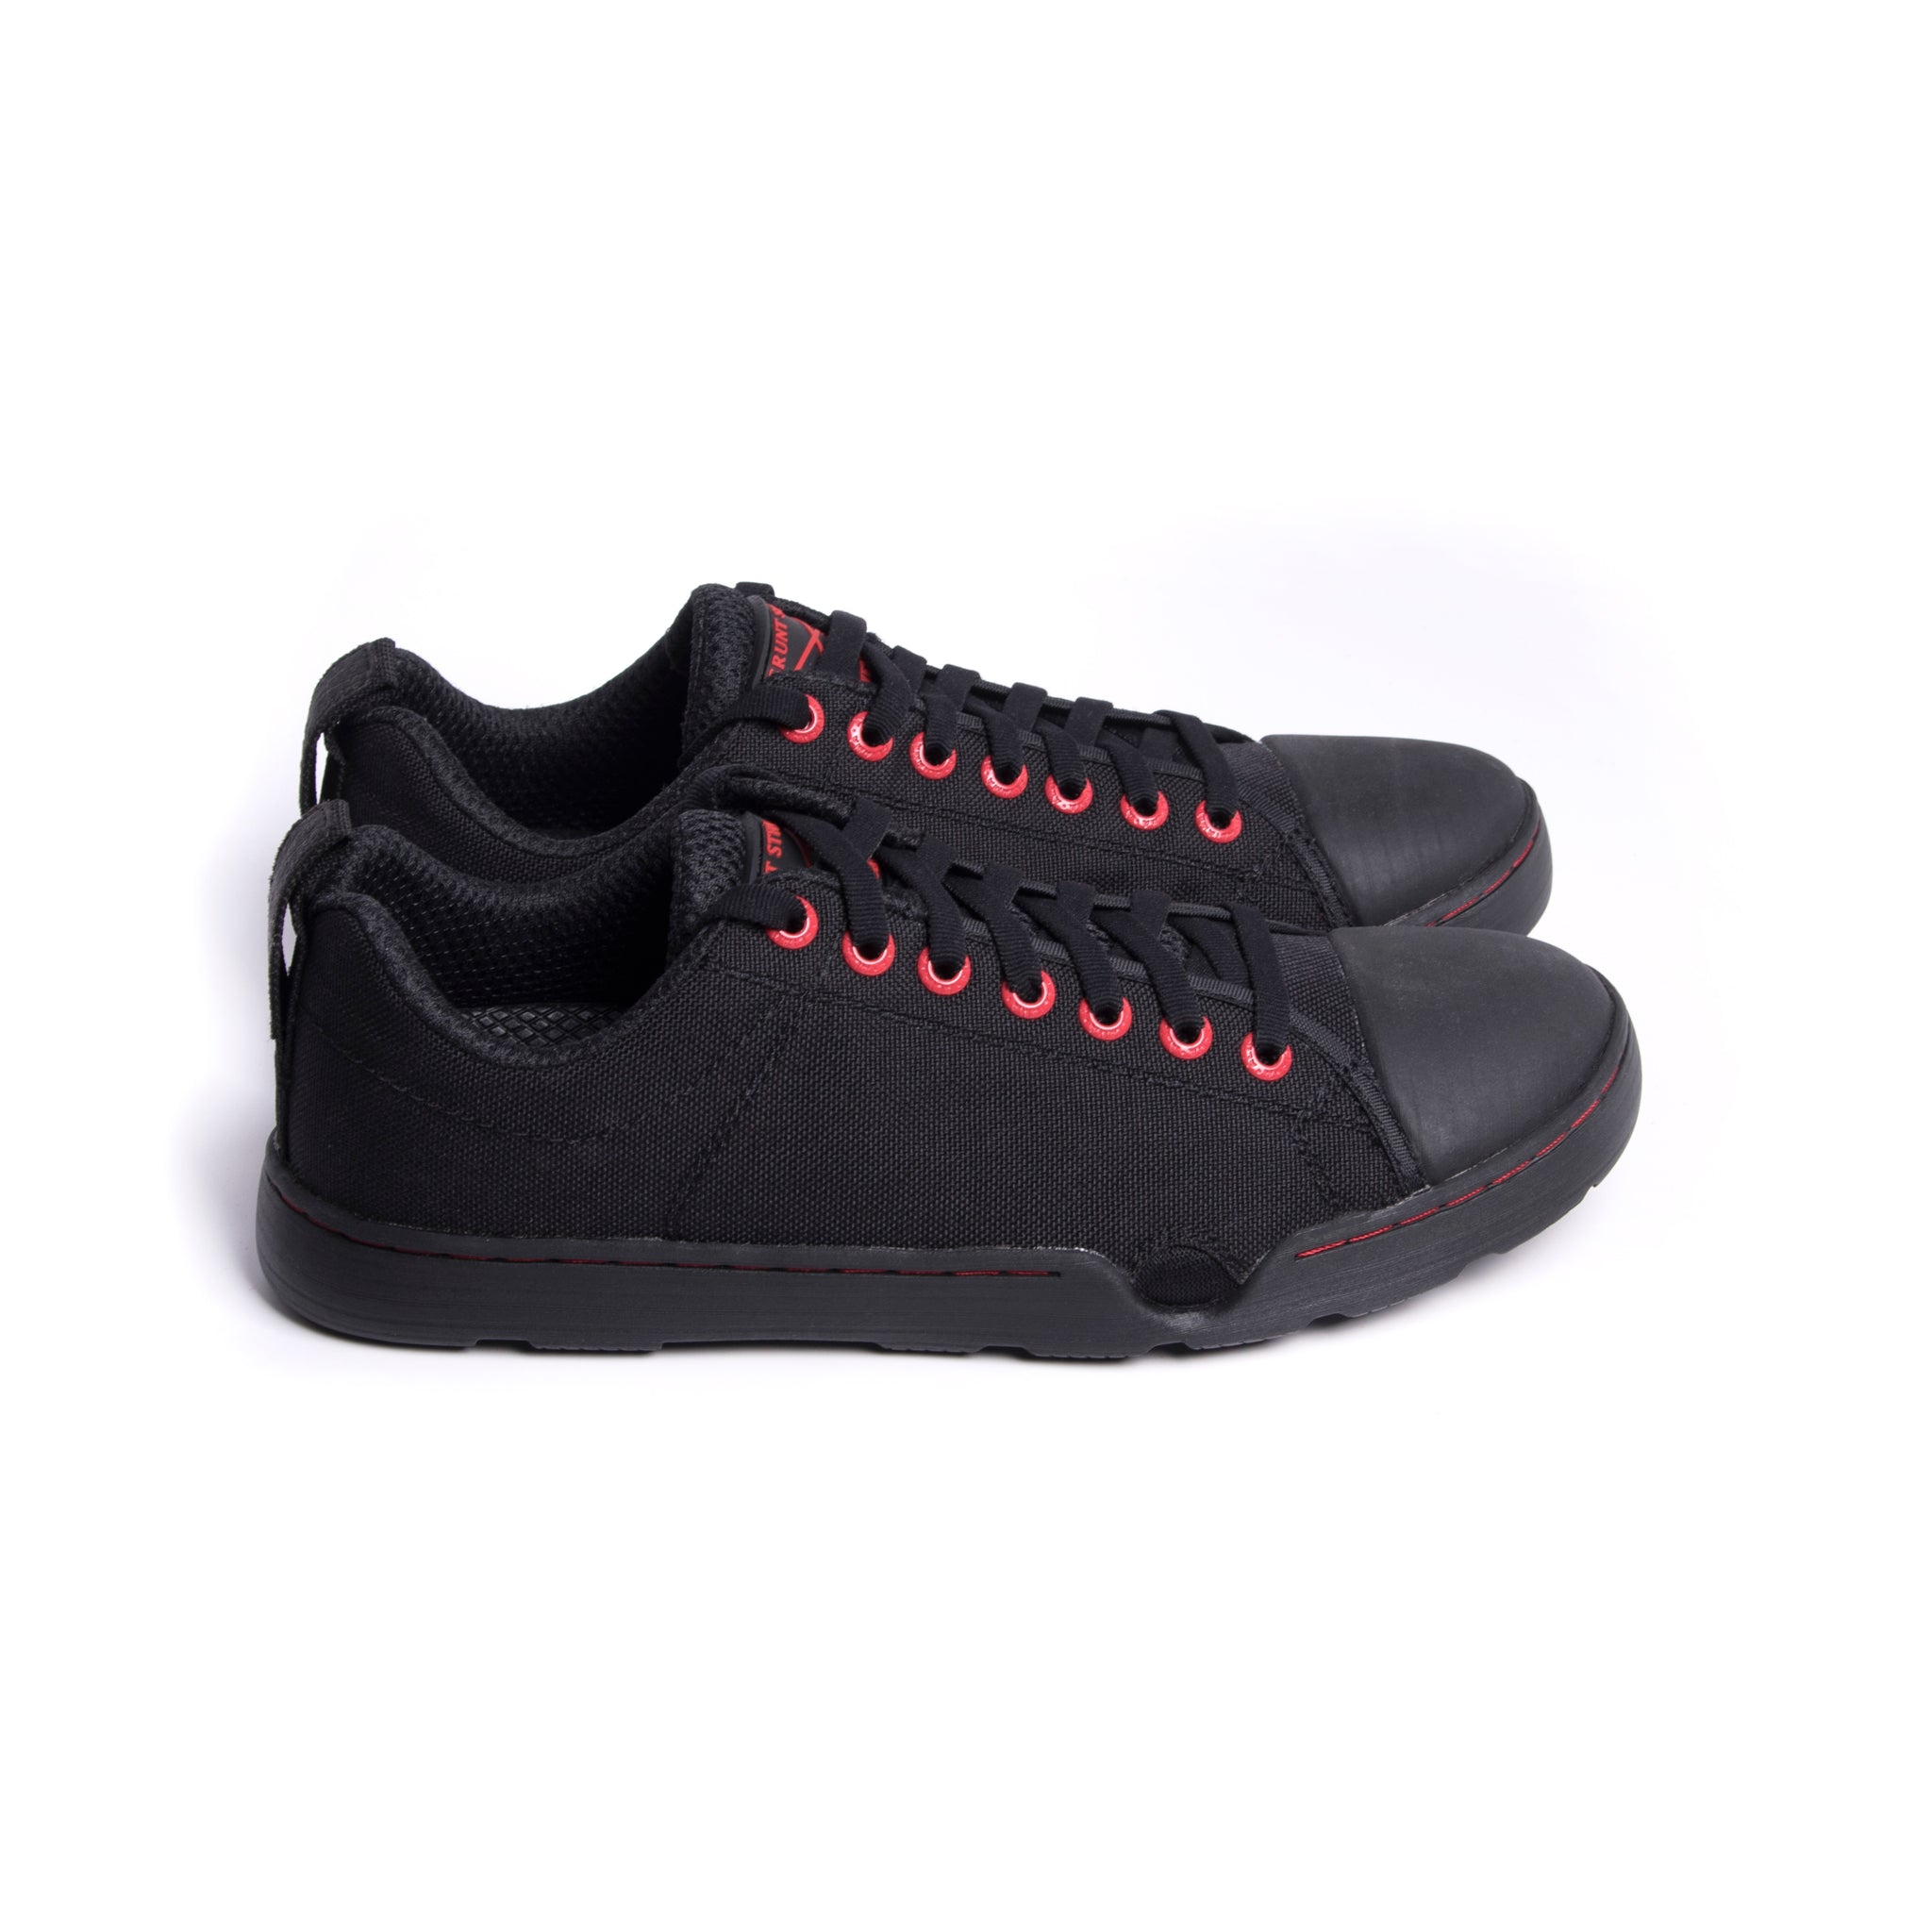 Low Tide Raid Shoes - Black/Red